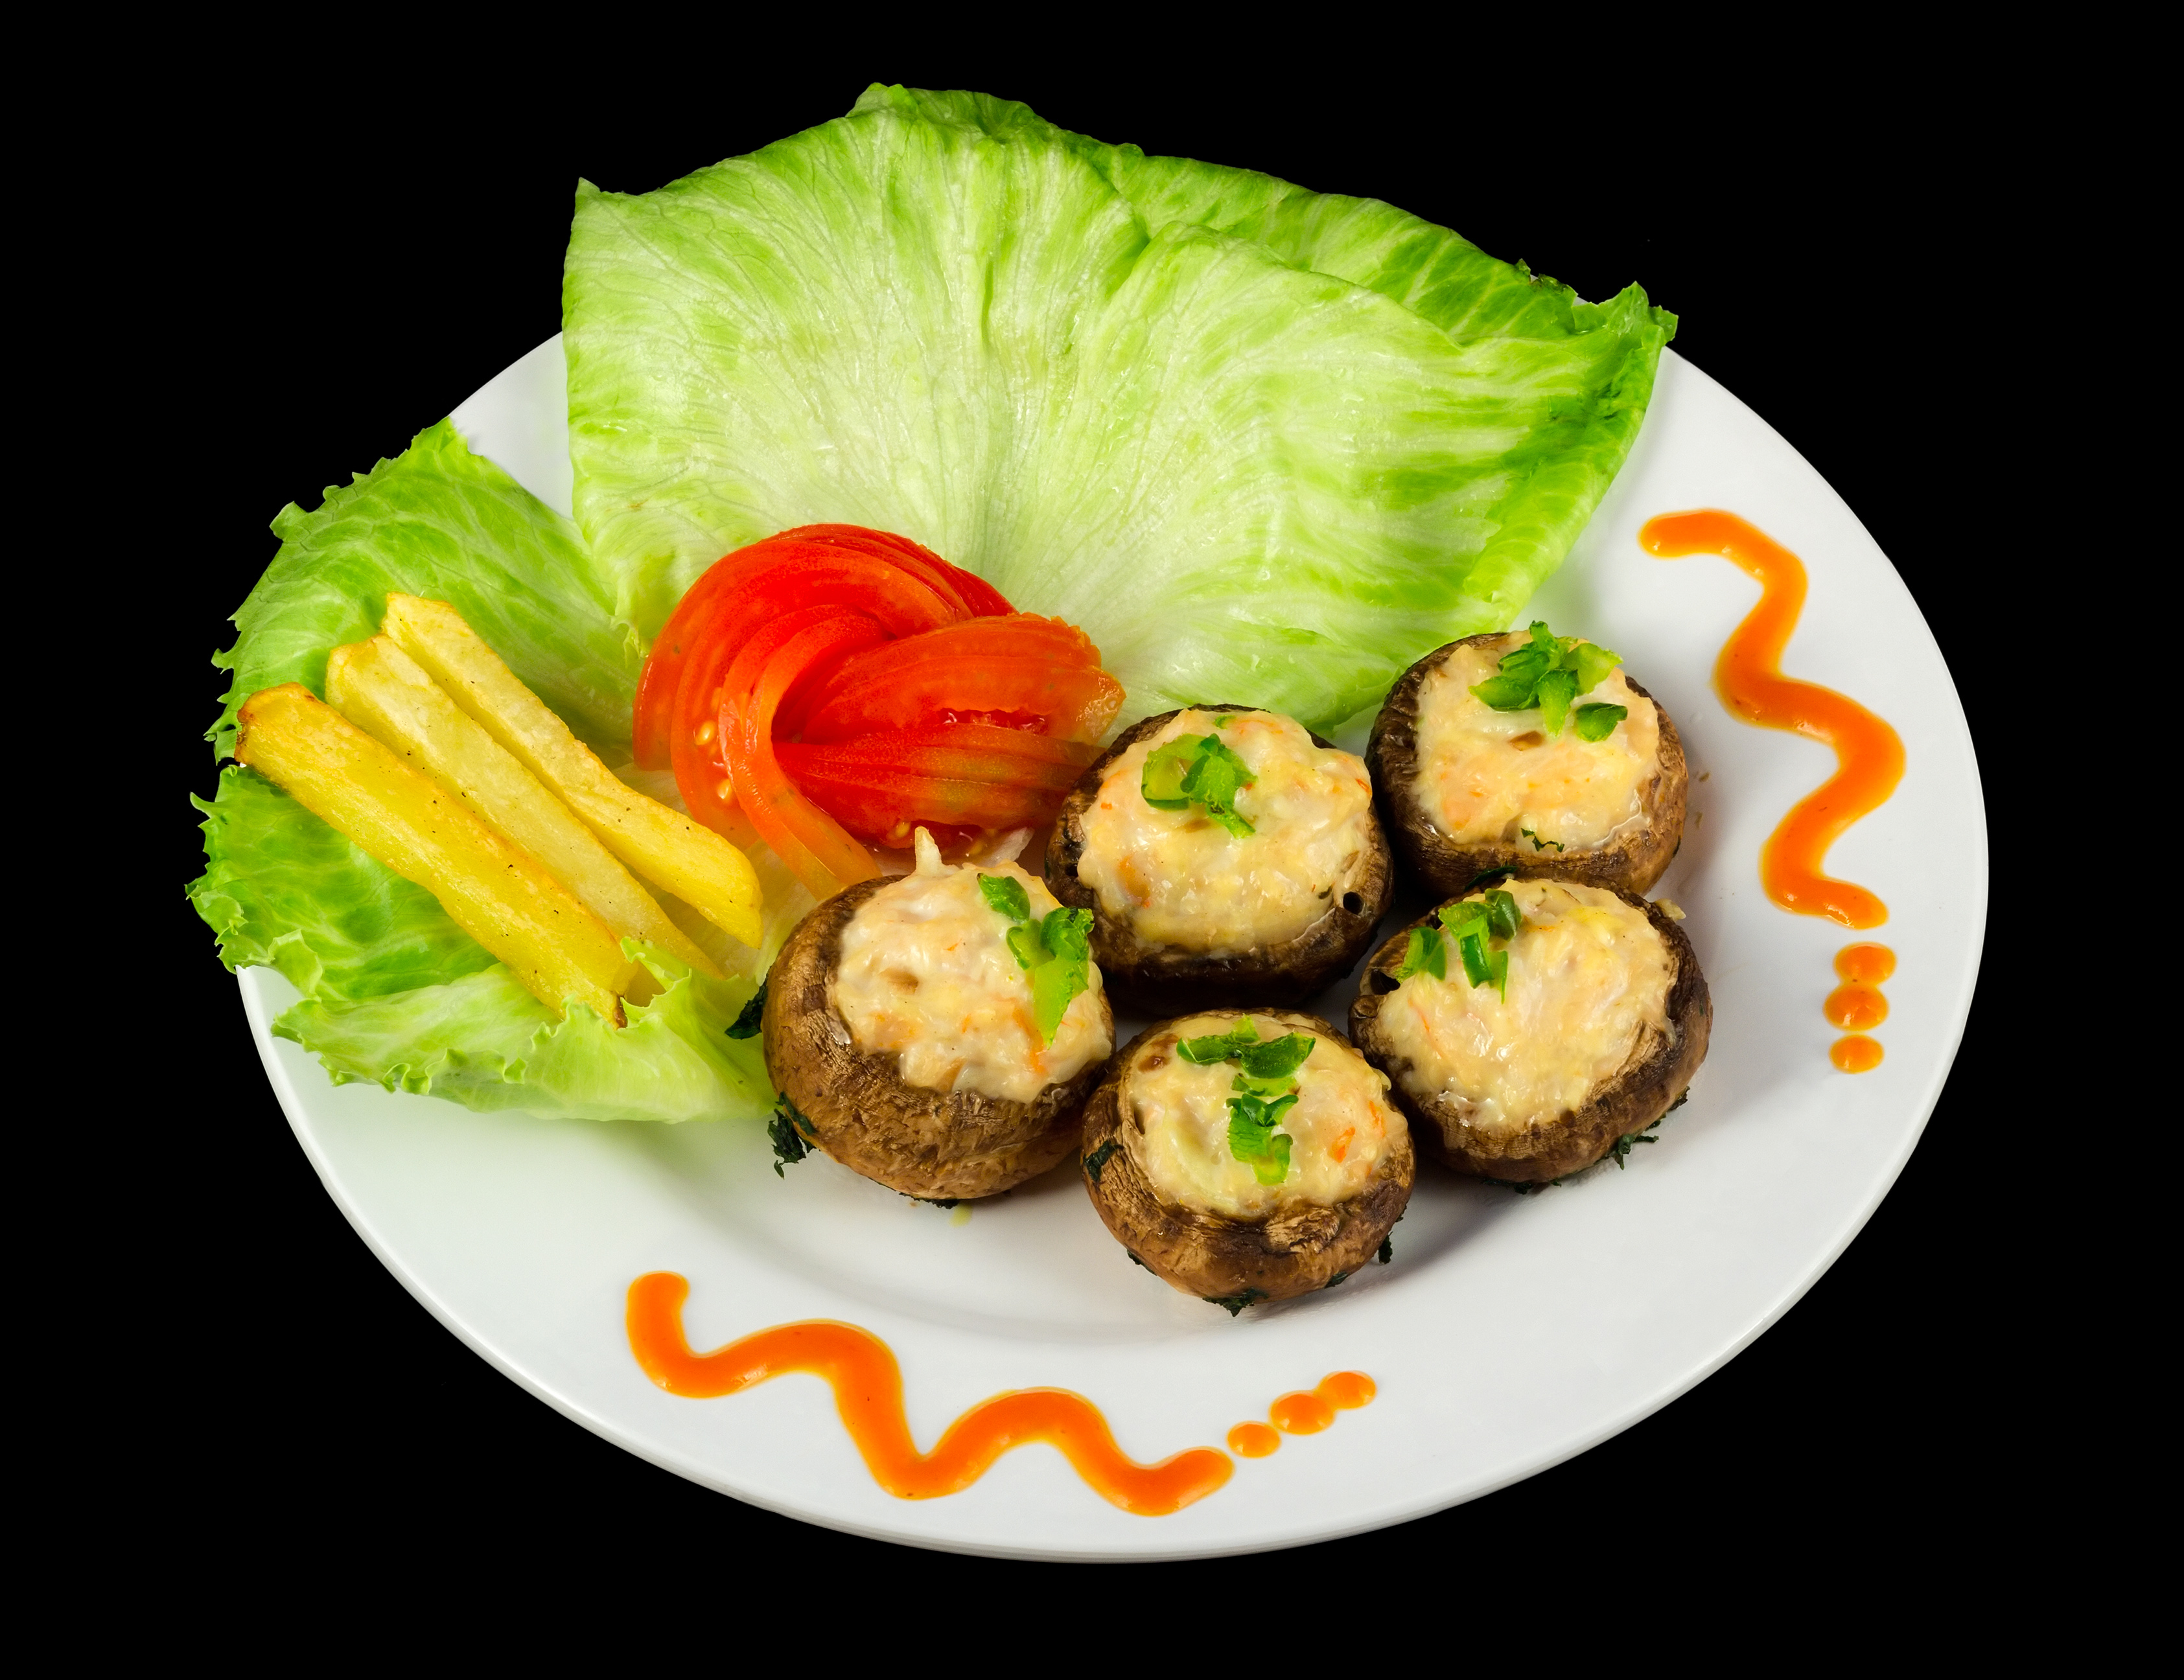 Stuffed mushrooms, 2015-06-25